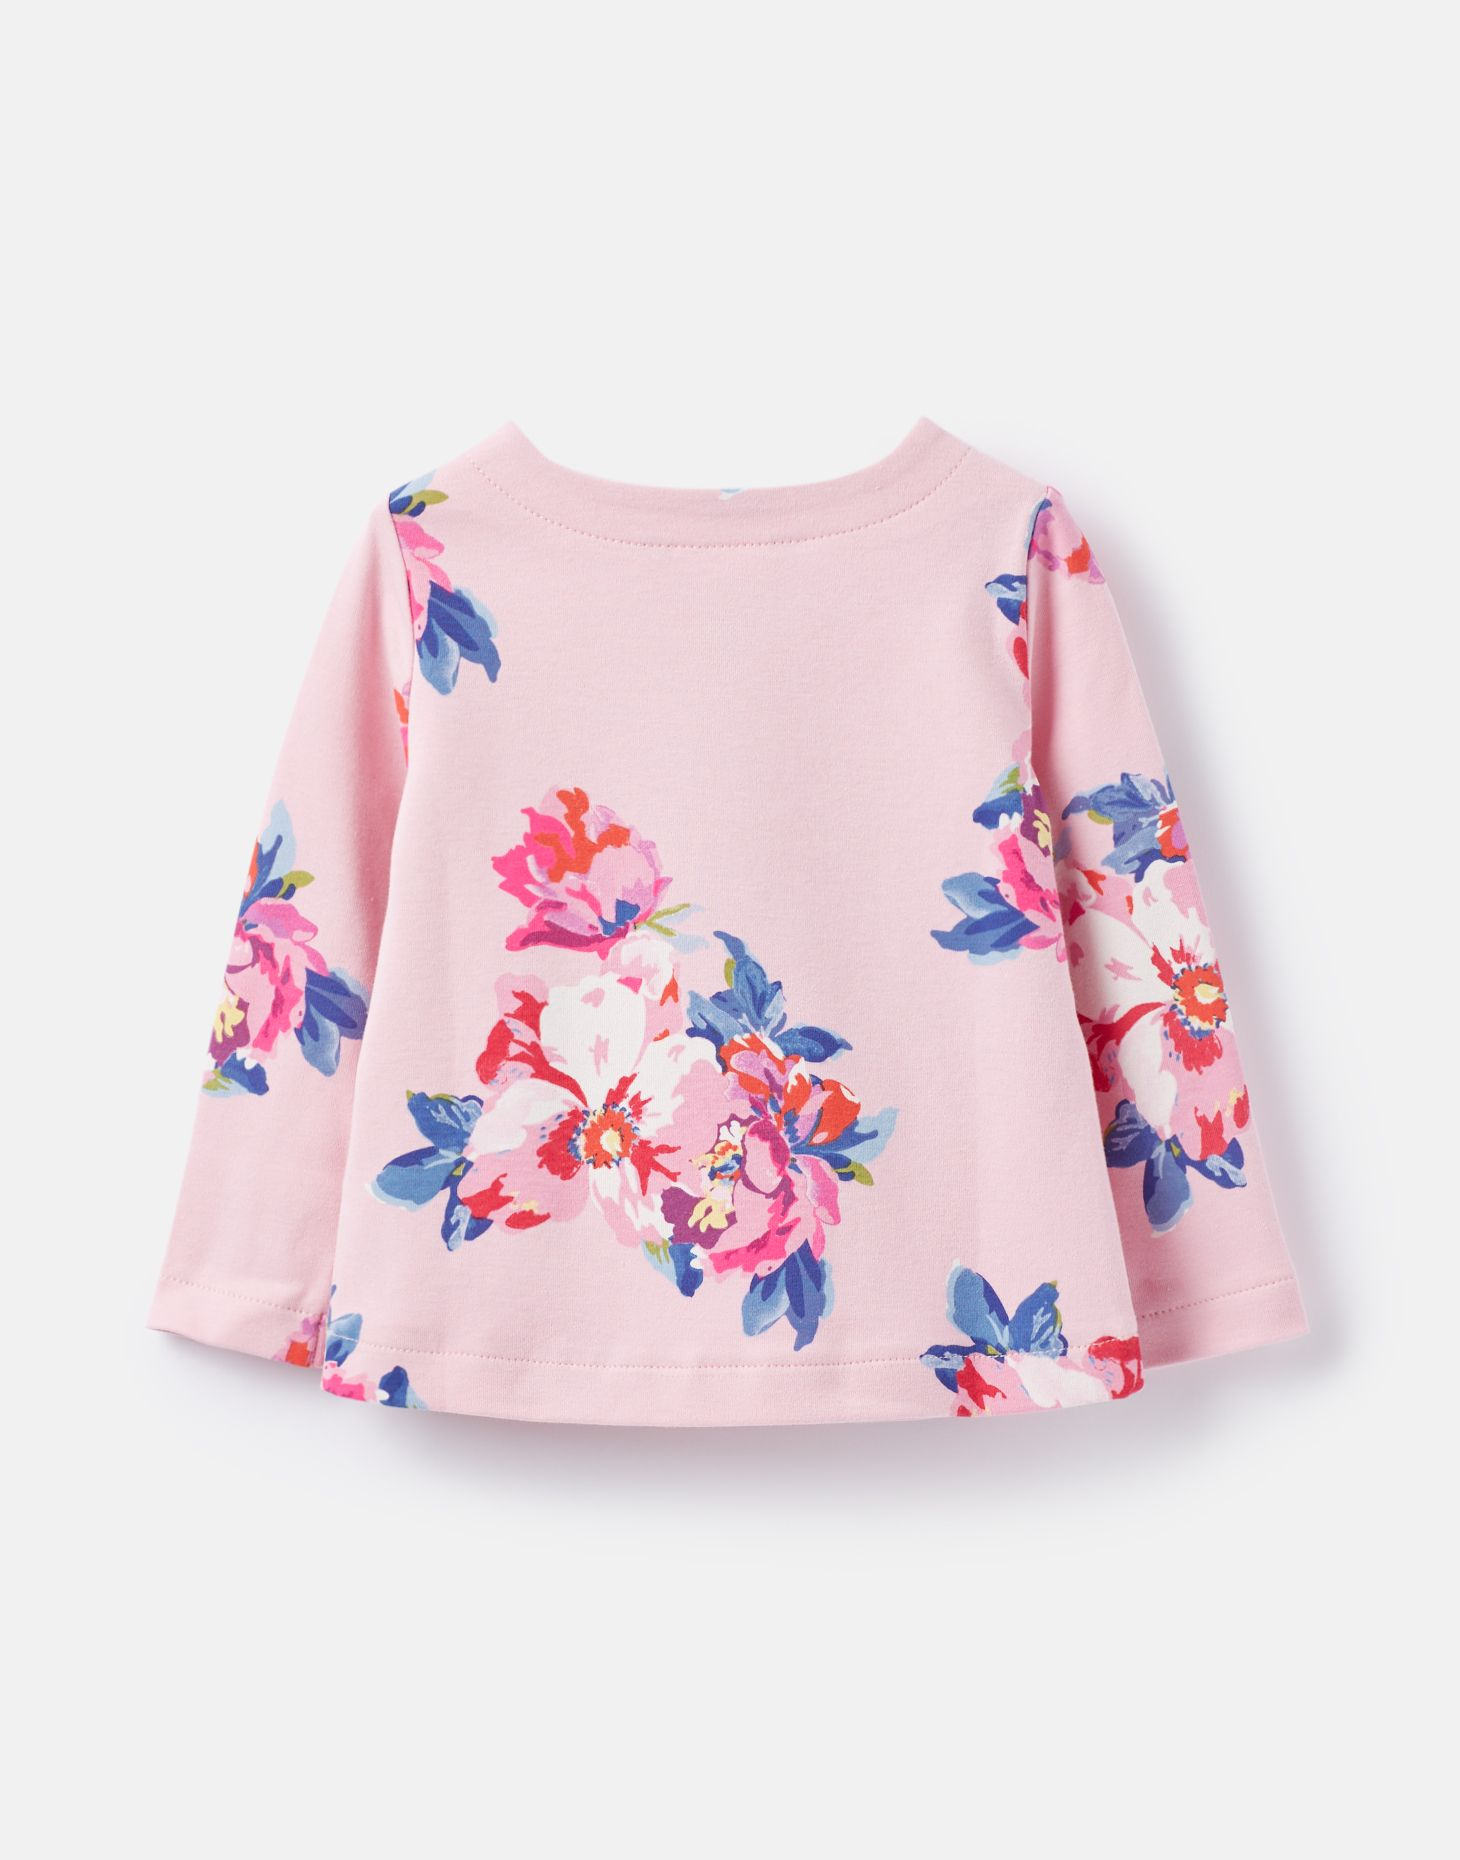 Joules 207529 Jersey Top Shirt in PINK FLORAL